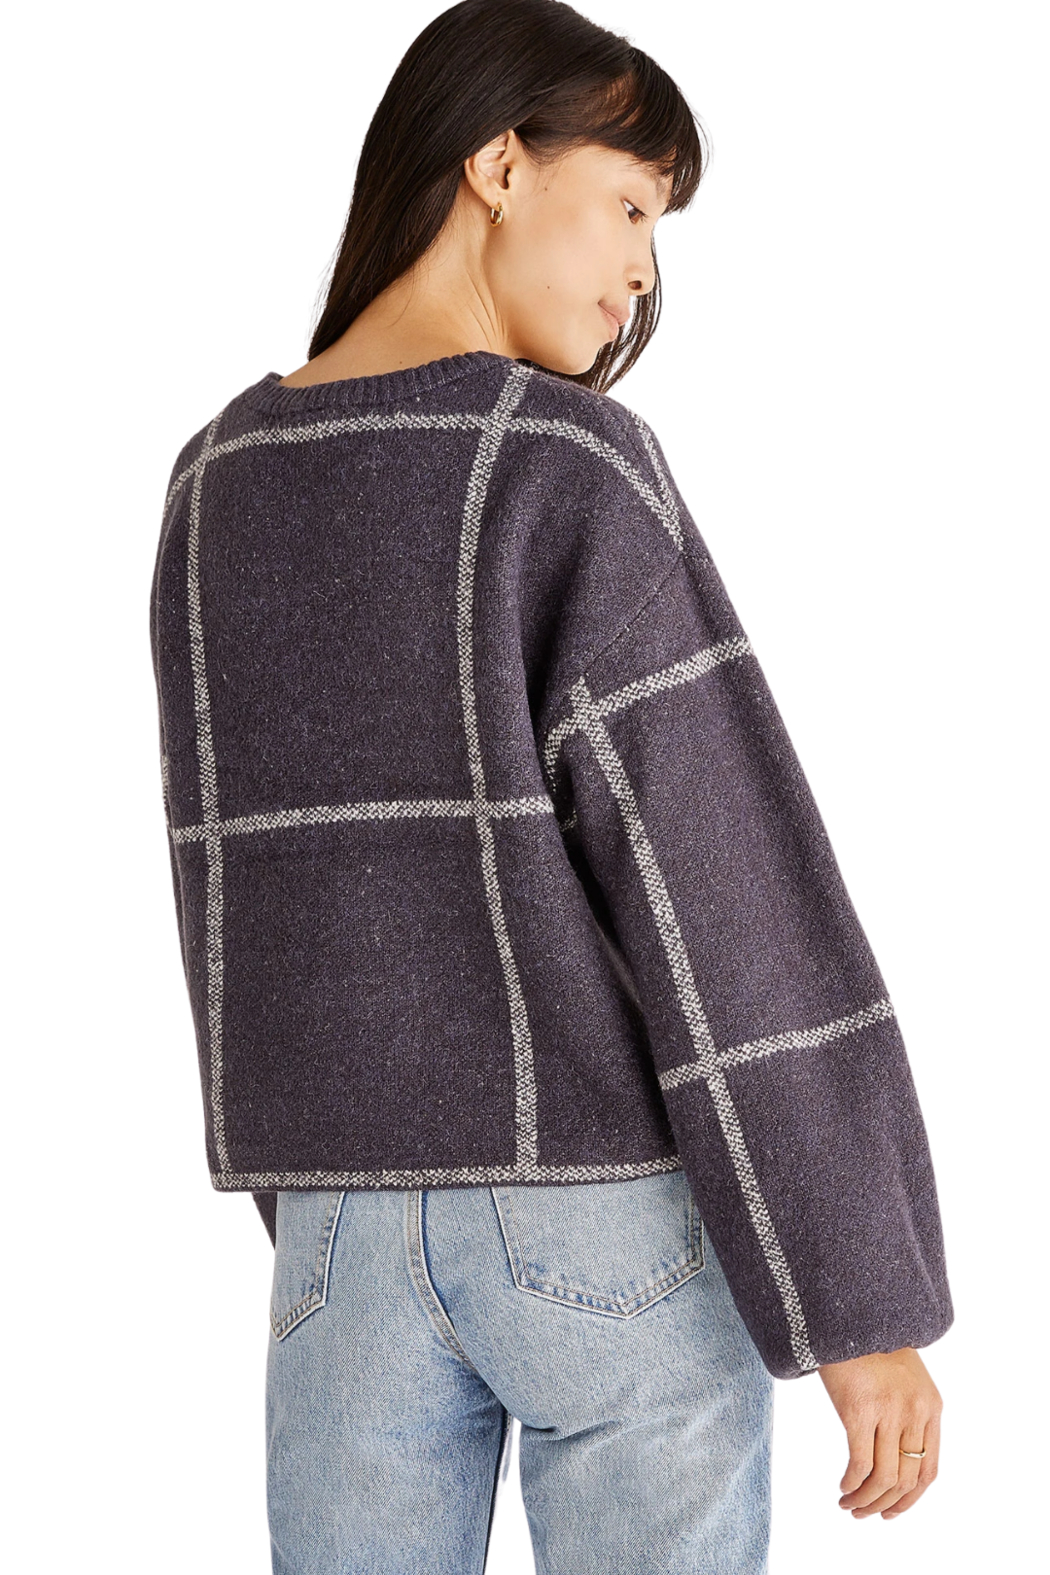 z supply  Solange Plaid Sweater - Side Cropped Image